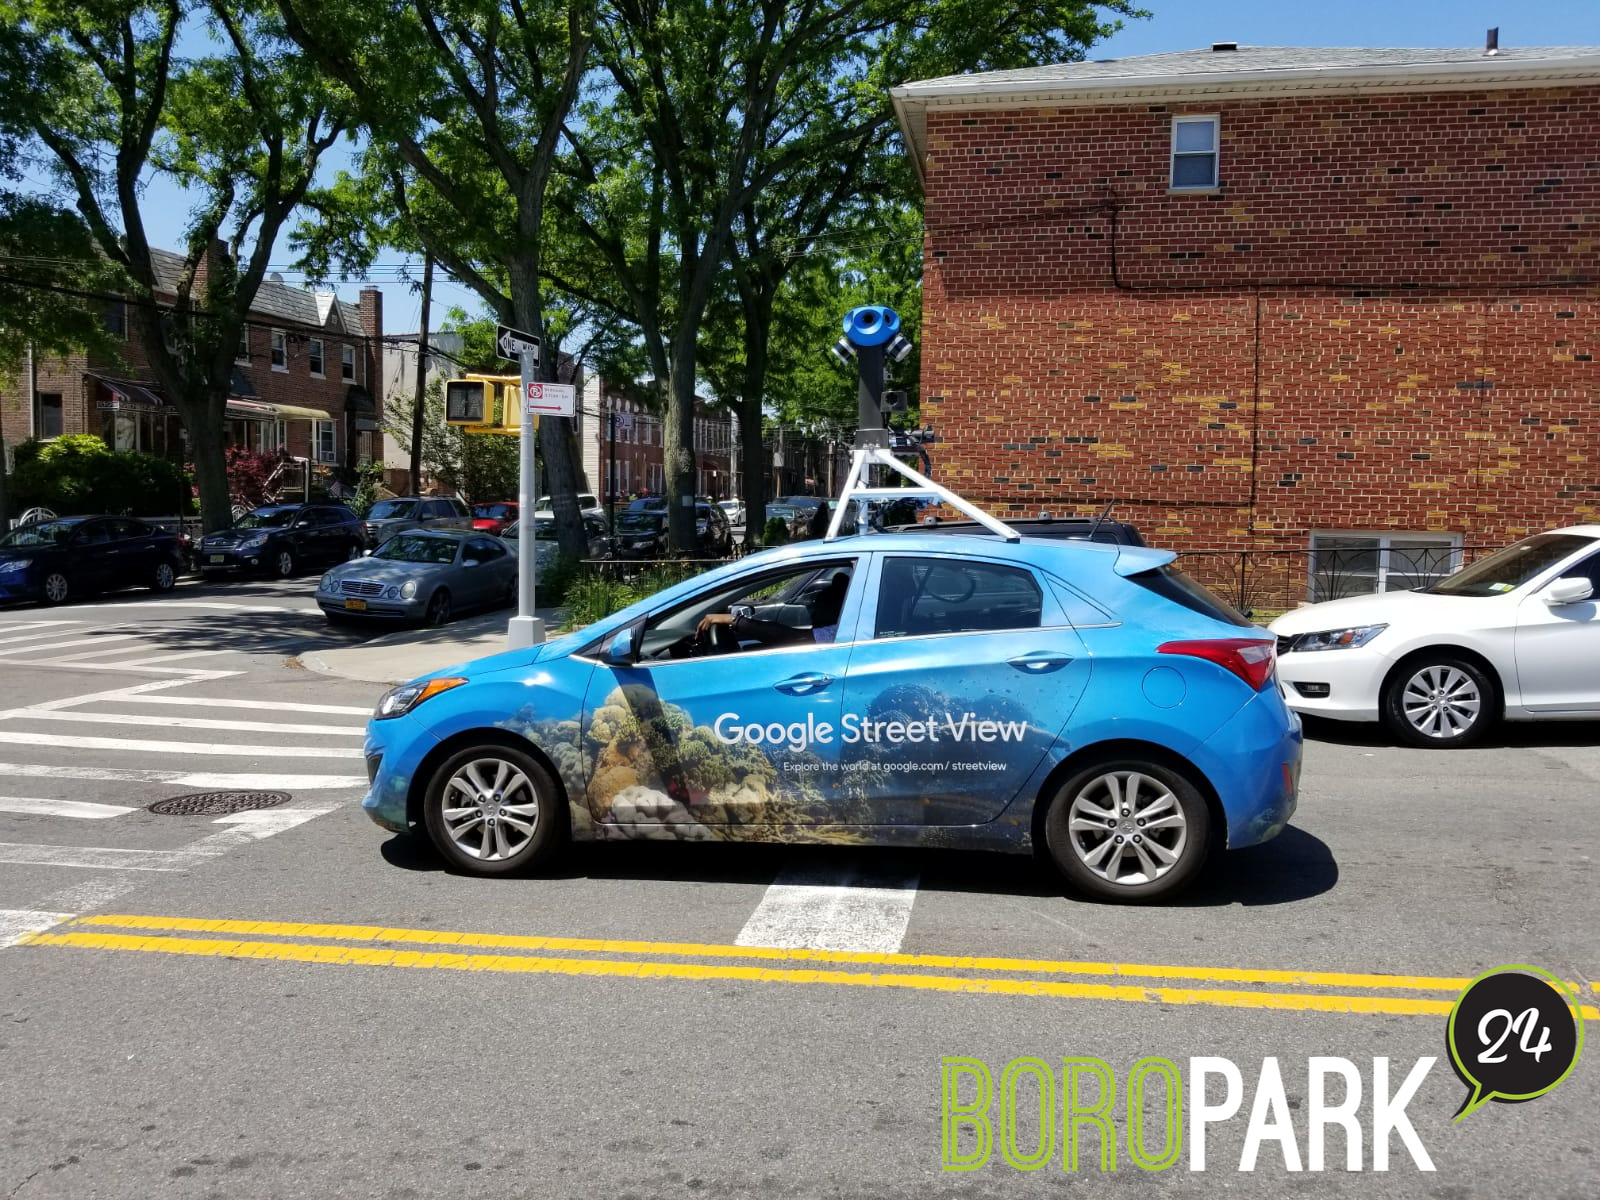 Google Street View Car Spotted in Boro Park! – Boro Park 24 on google earth, location view, competition of google street view, google maps cars 2008, google maps vehicle, google street view schedule, google search, flickr street view car, aspen movie map, google street view in oceania, google street view privacy concerns, apple street view car, google street view philippines, google street view in africa, google street view wrecks, google street view in latin america, web mapping, nokia street view car, google earth street view, google street view in europe, google street view in asia, google air view, google maps android icon, google street view in the united states, google maps bird's eye view, google maps camera car, google street view washington dc, google art project,